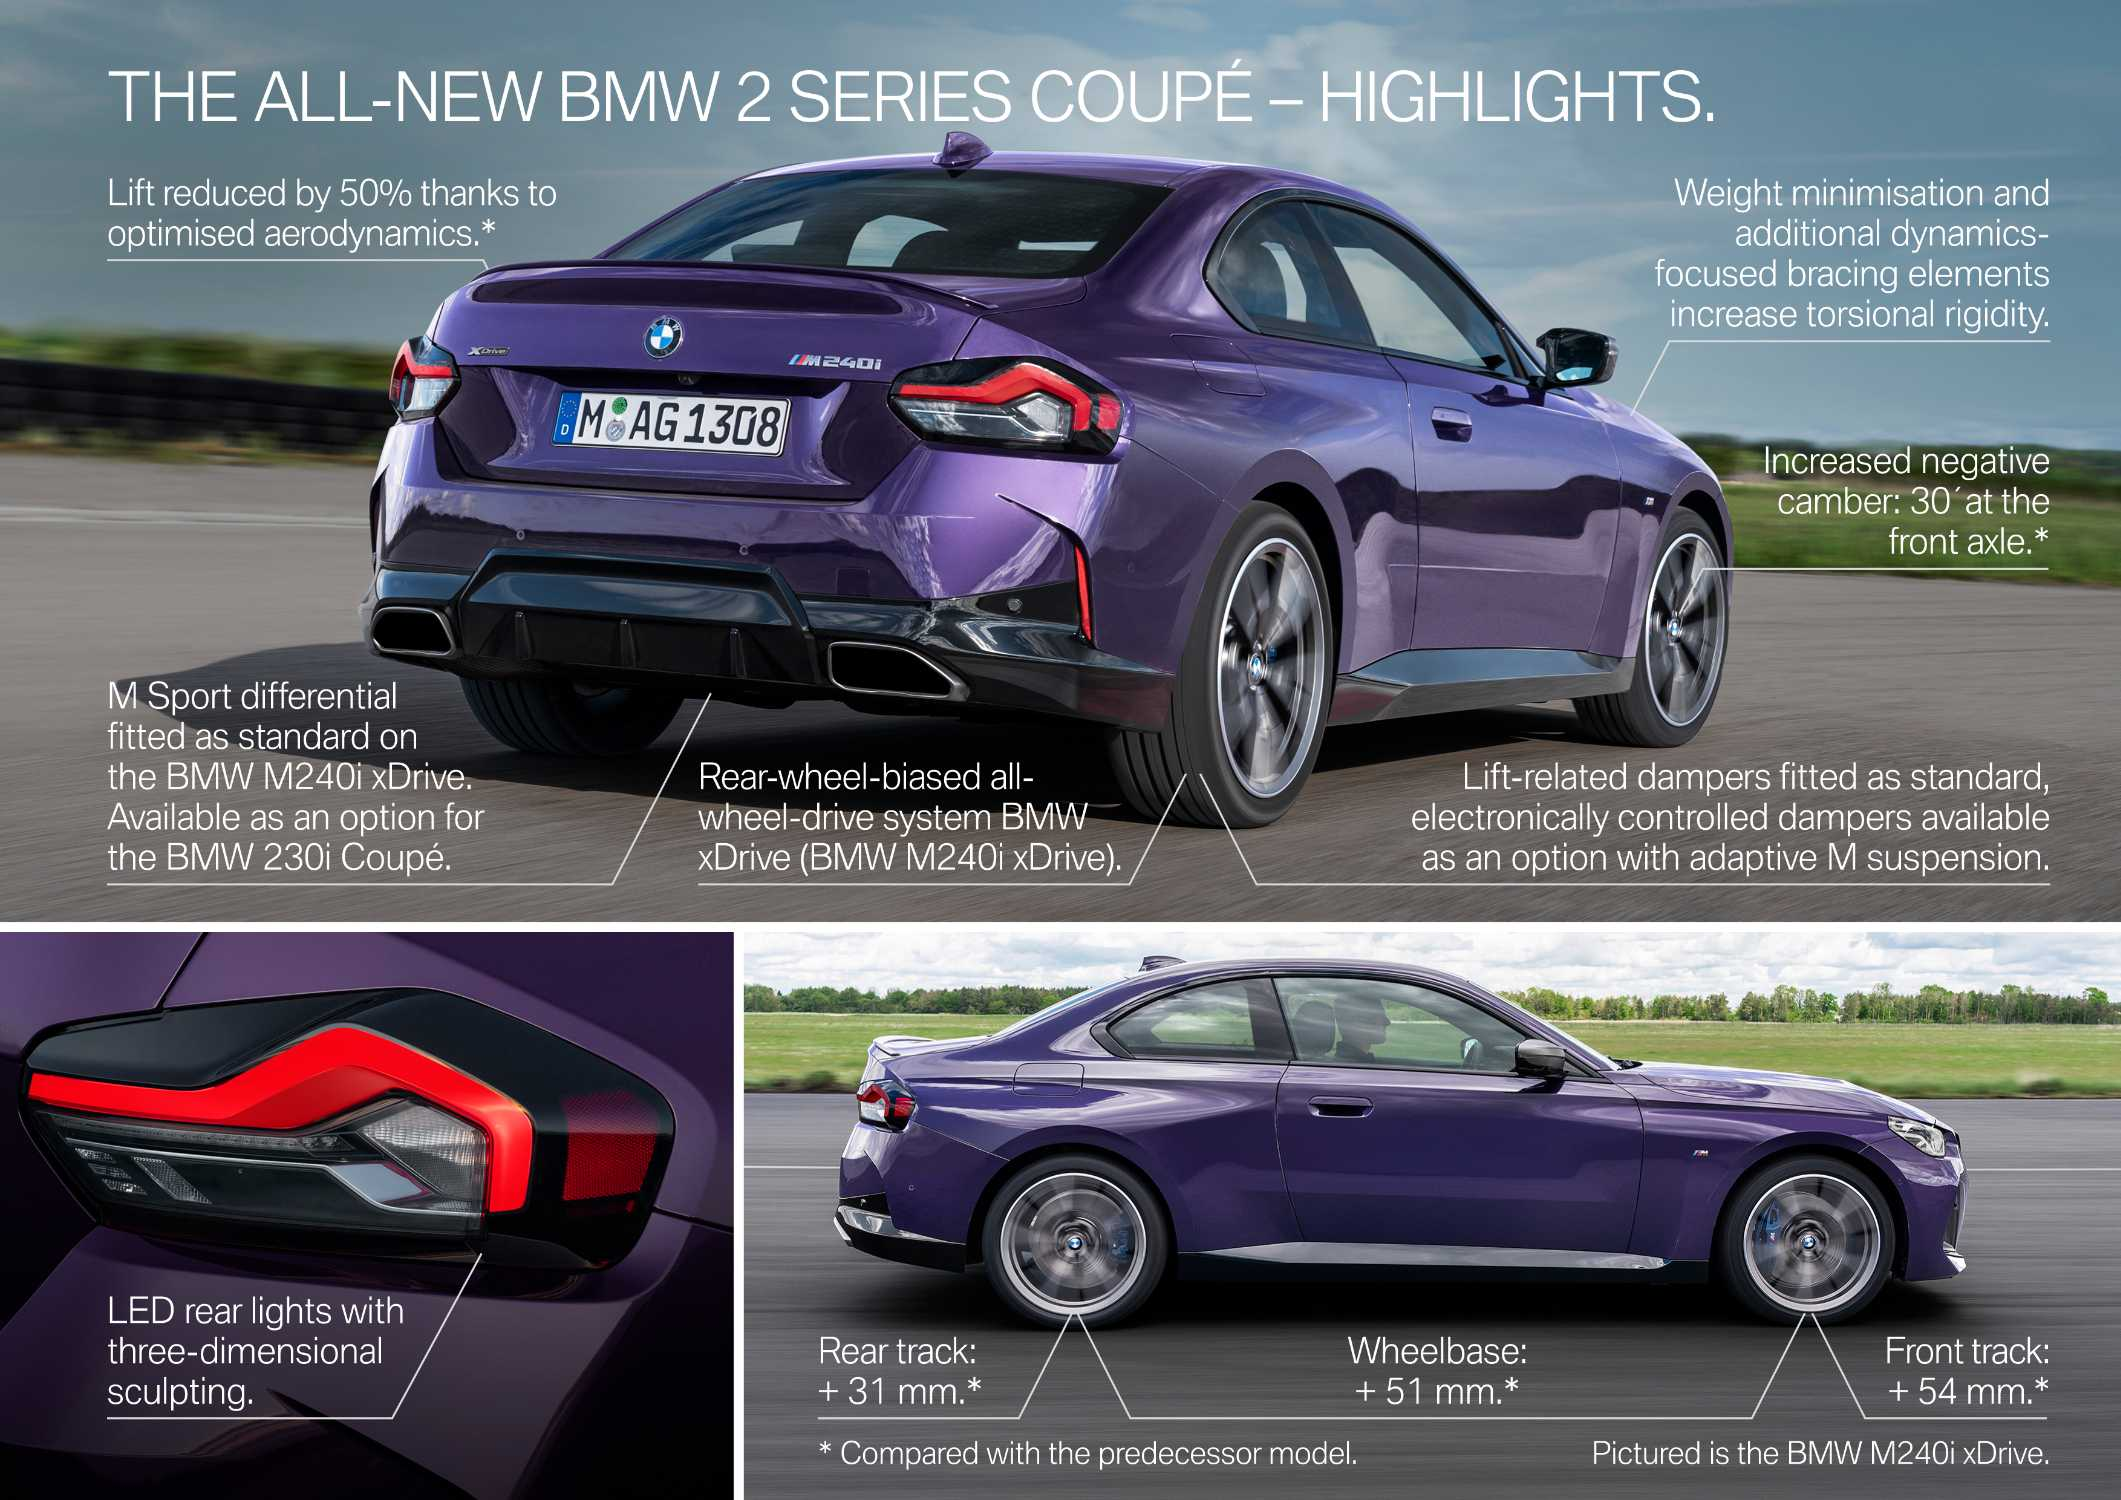 The all-new BMW 2 Series Coupé - Highlights (07/2021).